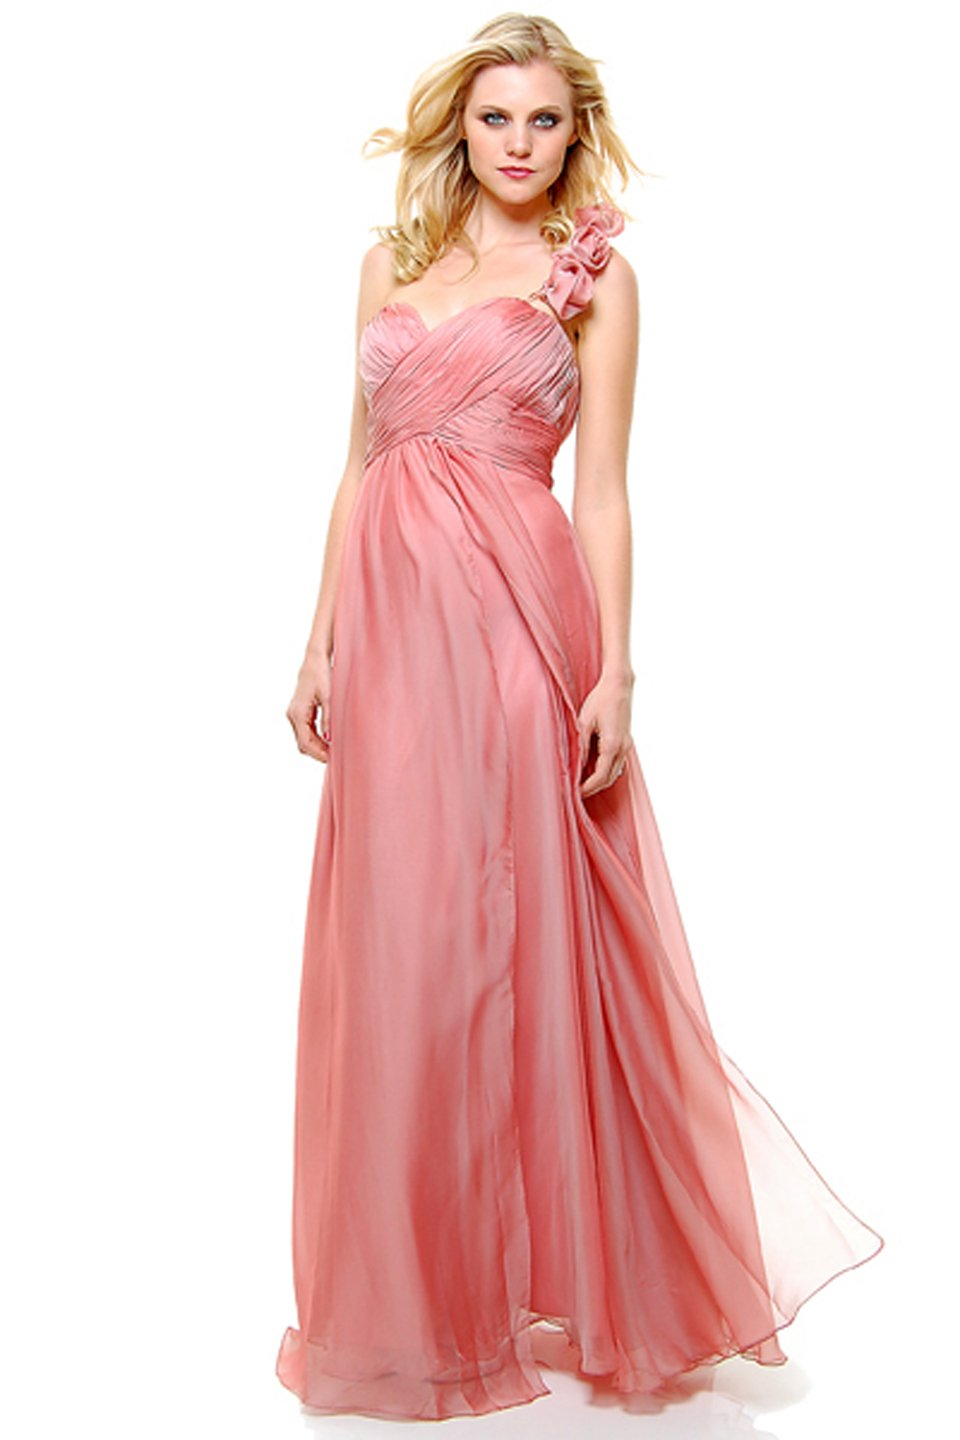 2011 Prom Dresses Collection